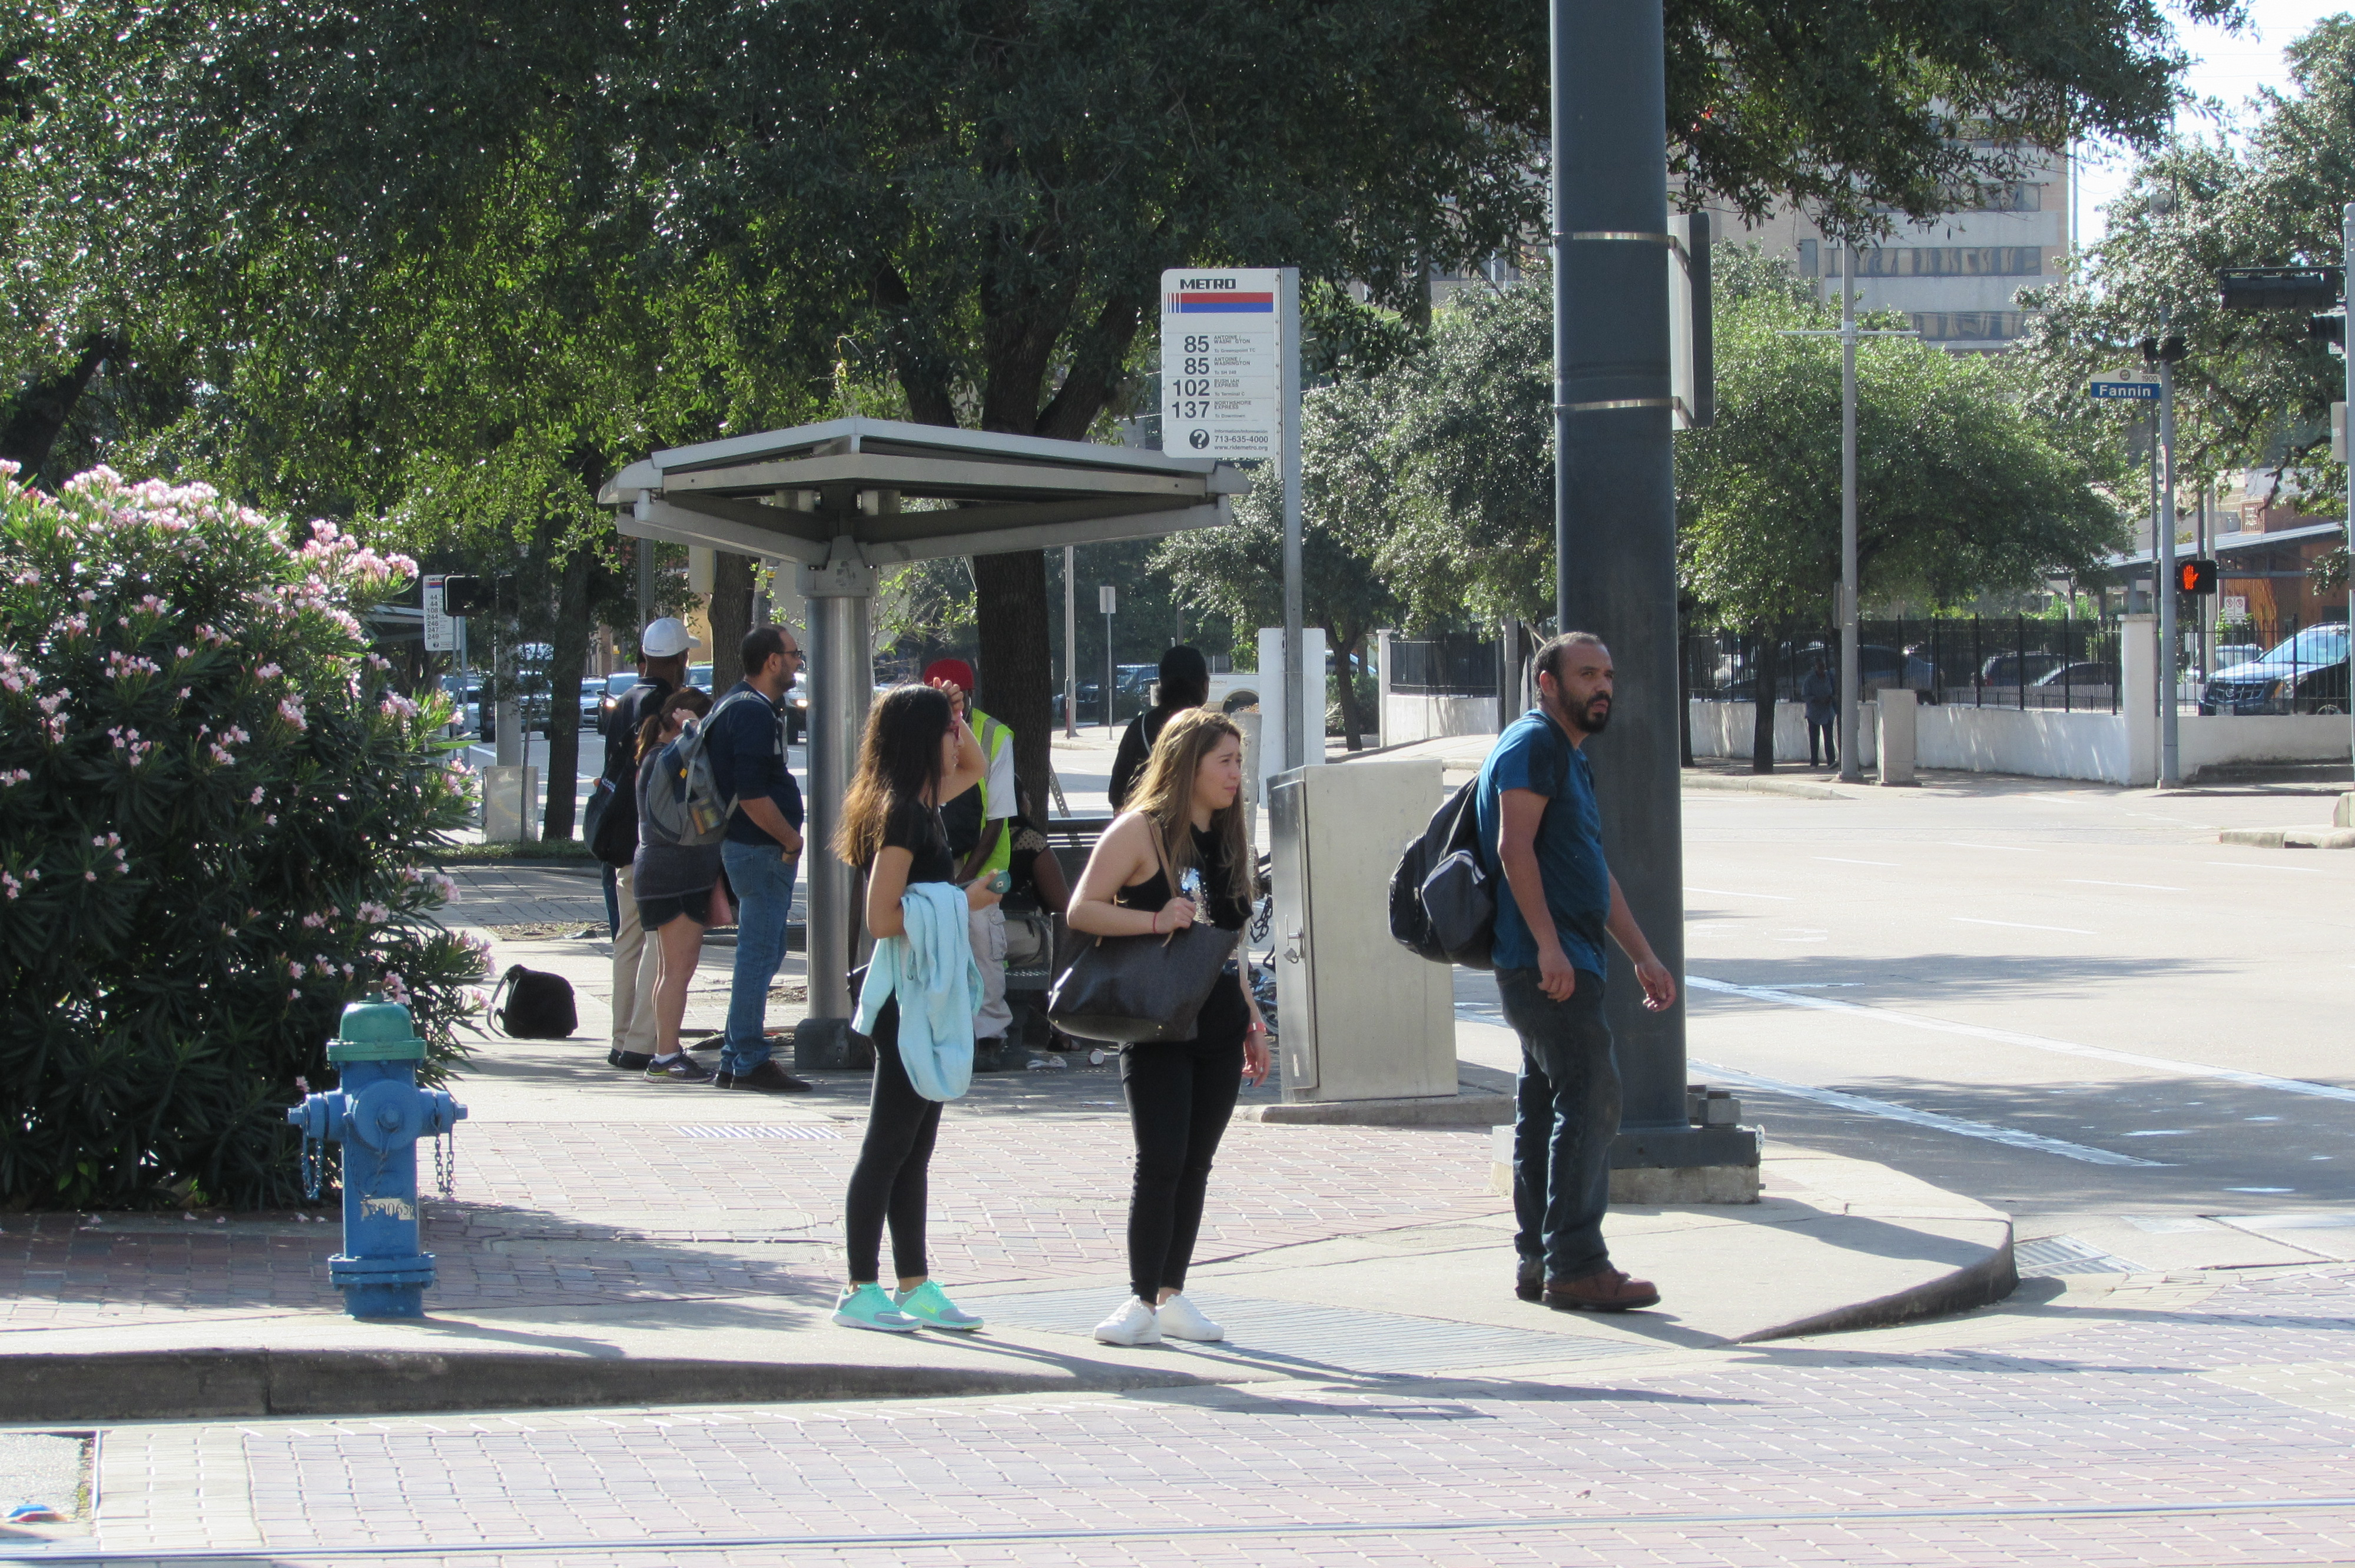 Riders wait for the bus near Metro's downtown headquarters.